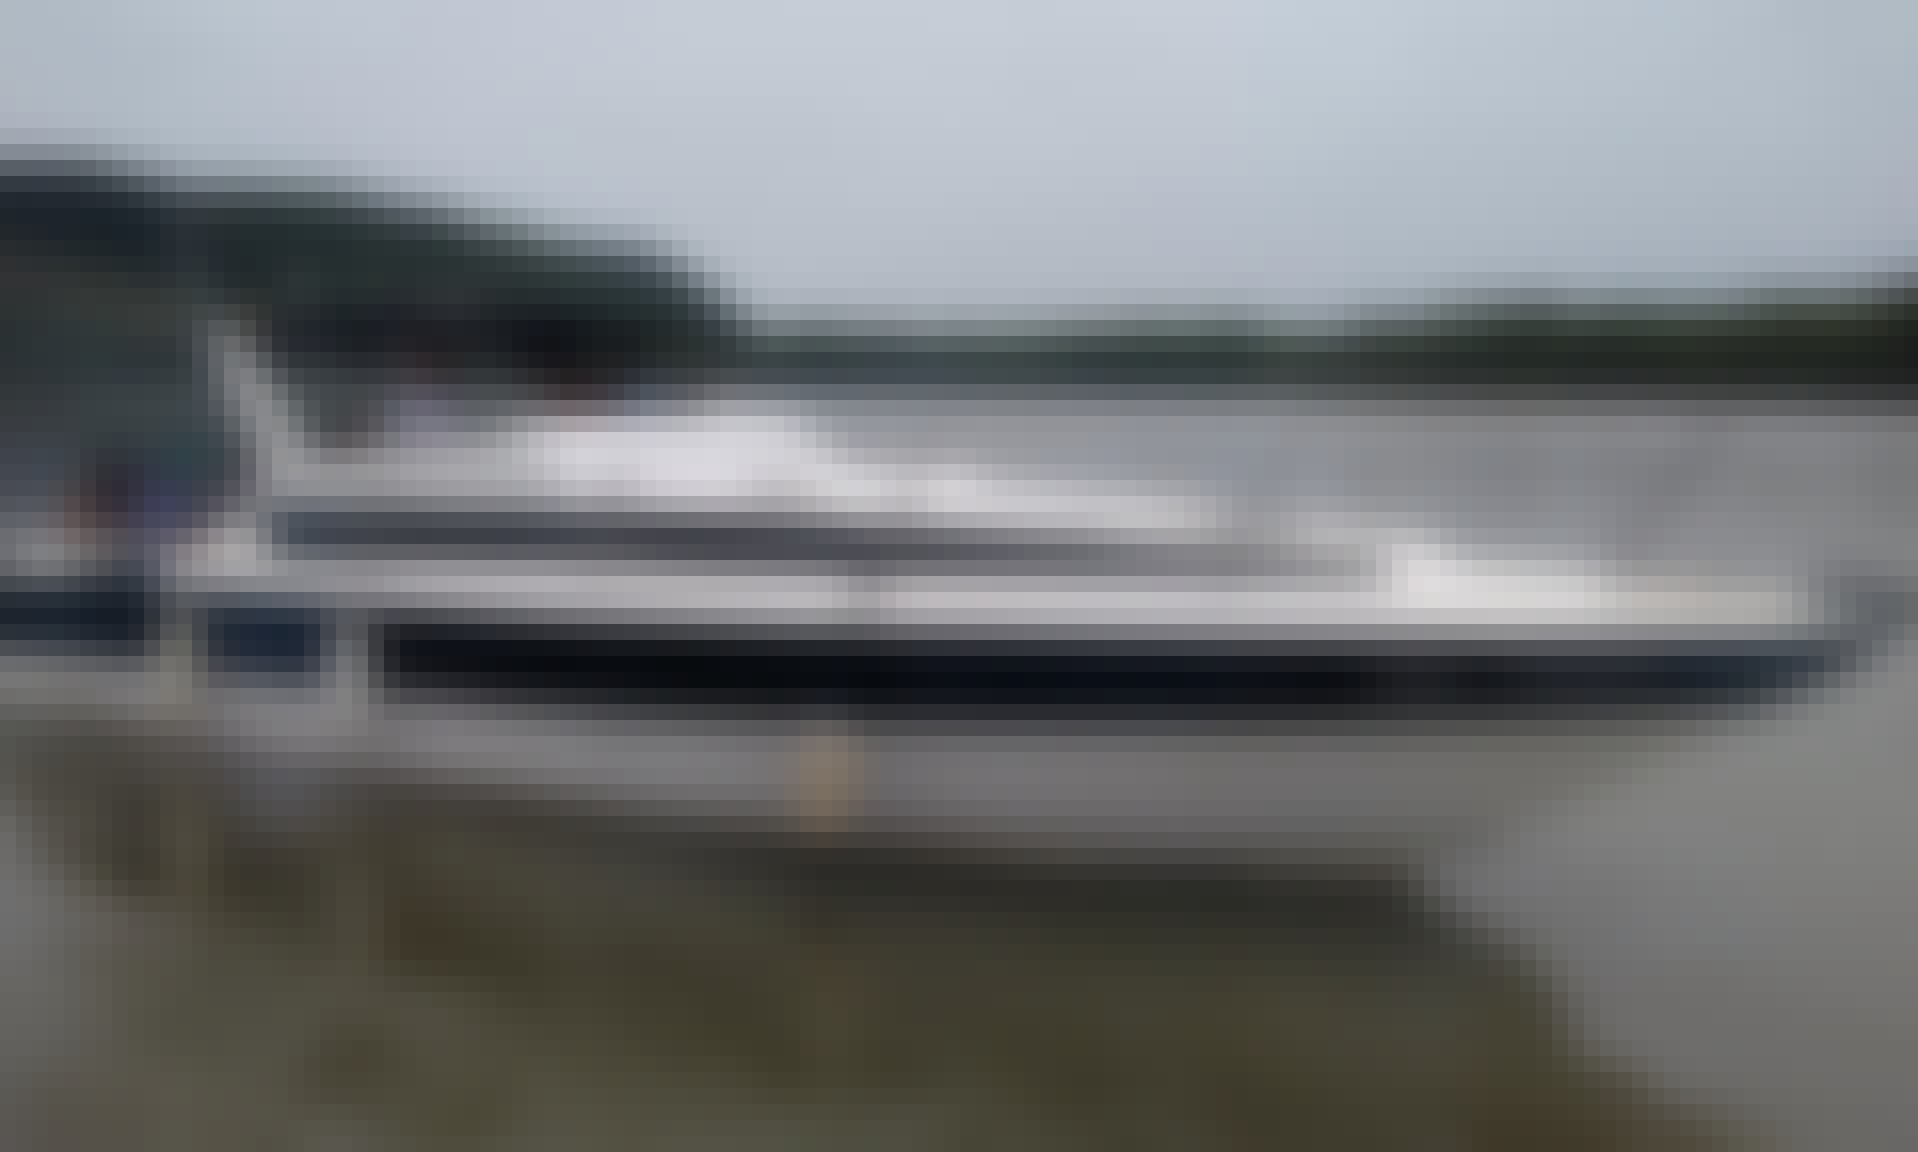 Affordable Speed Boat for 20 People, Ready to Rent in São Paulo, Brazil